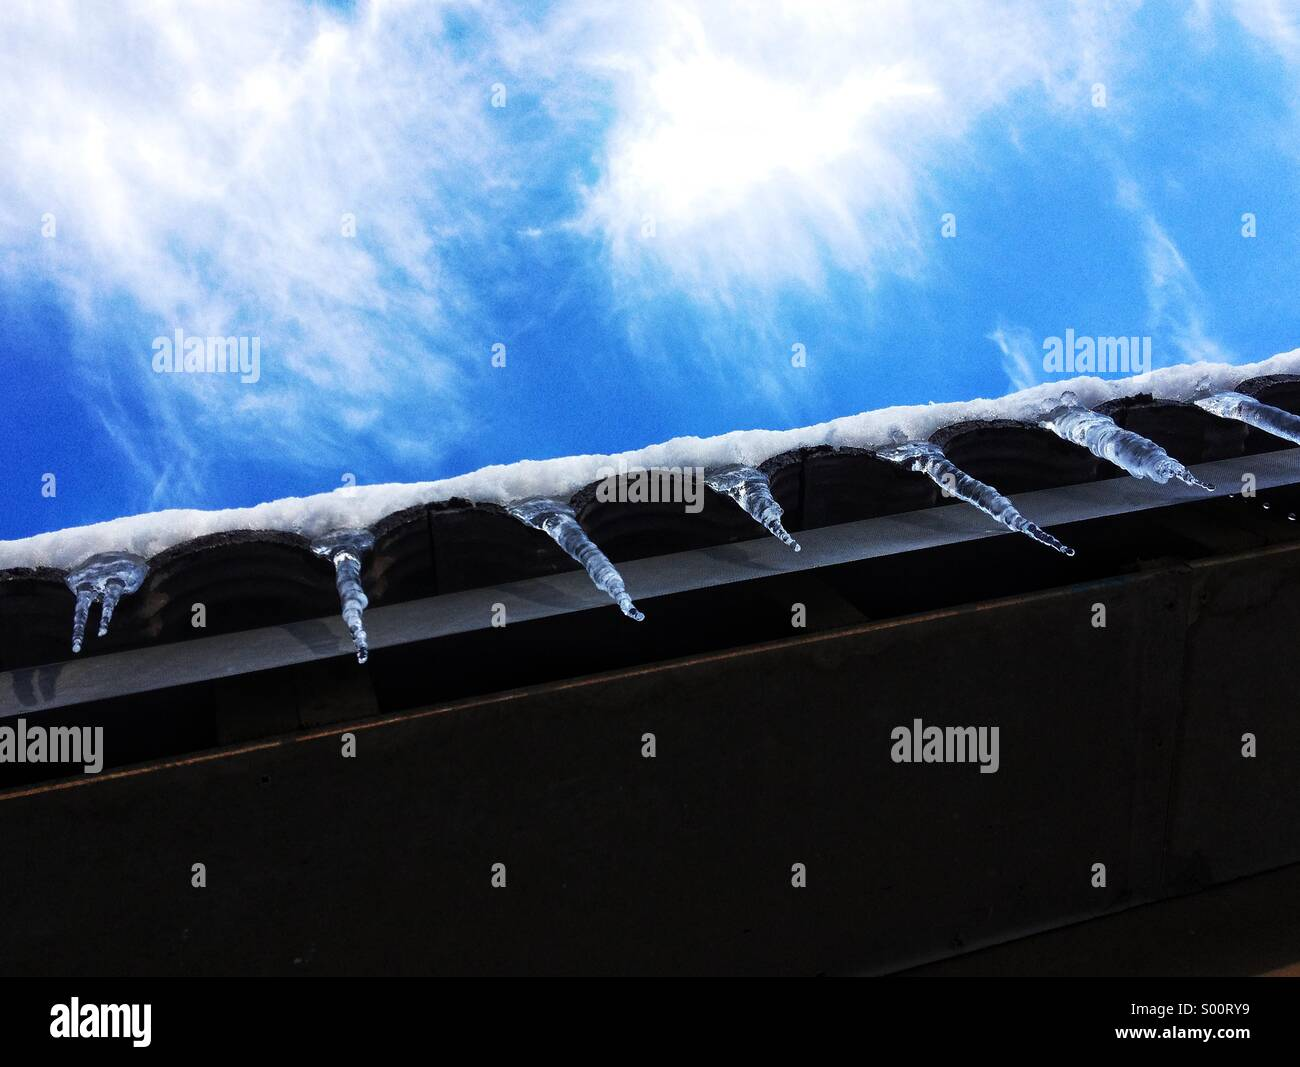 Icicles on roof - Stock Image